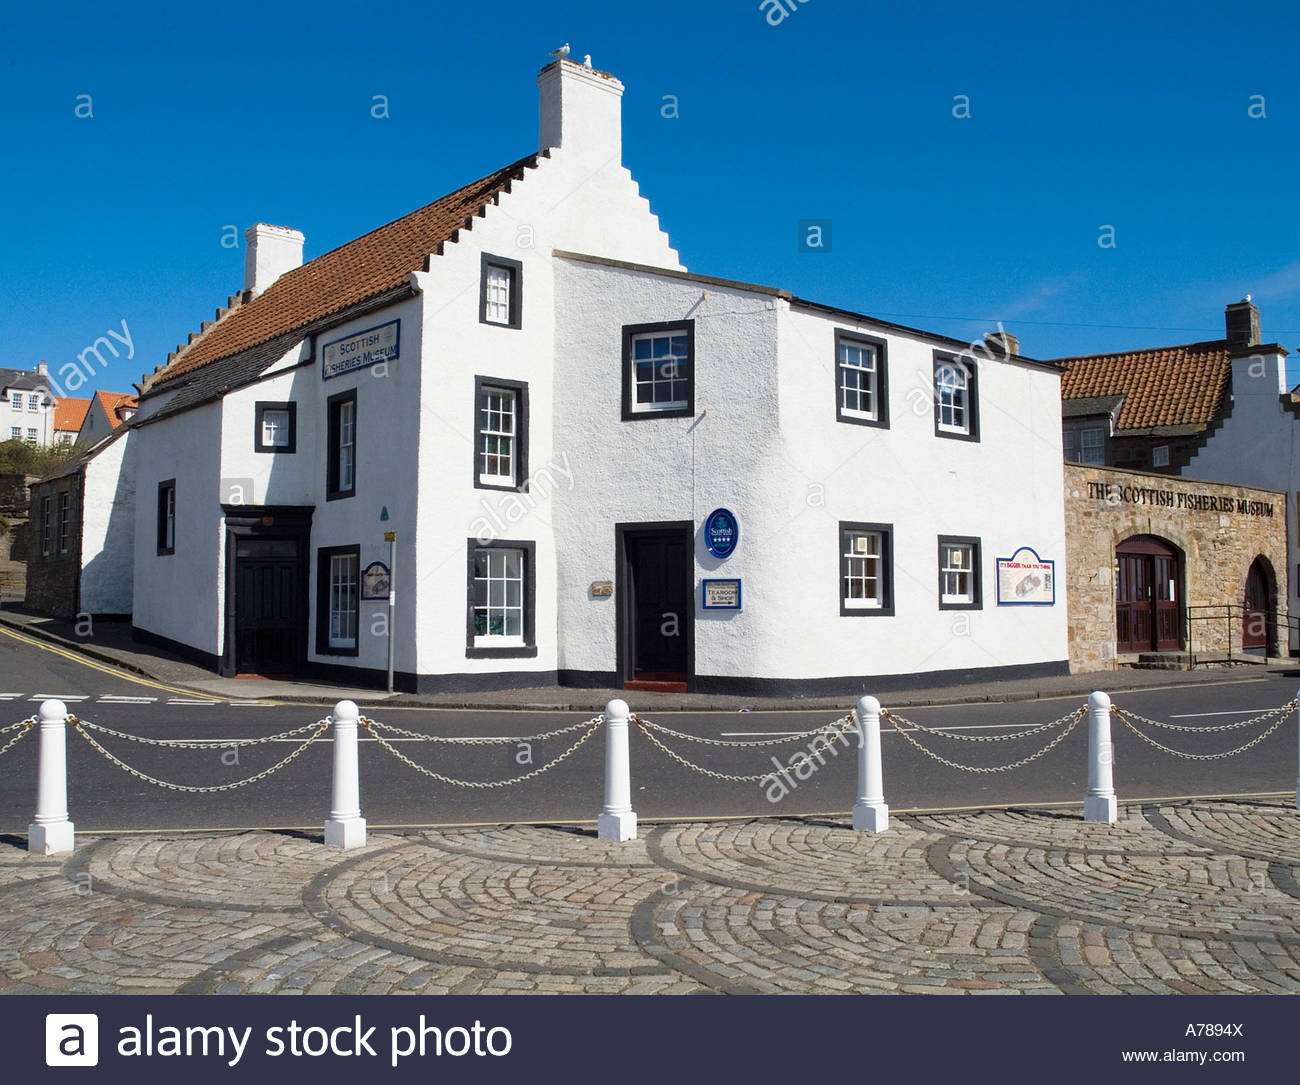 KODE Bergen, dh Scottish Fisheries Museum ANSTRUTHER FIFE White washed clad ...